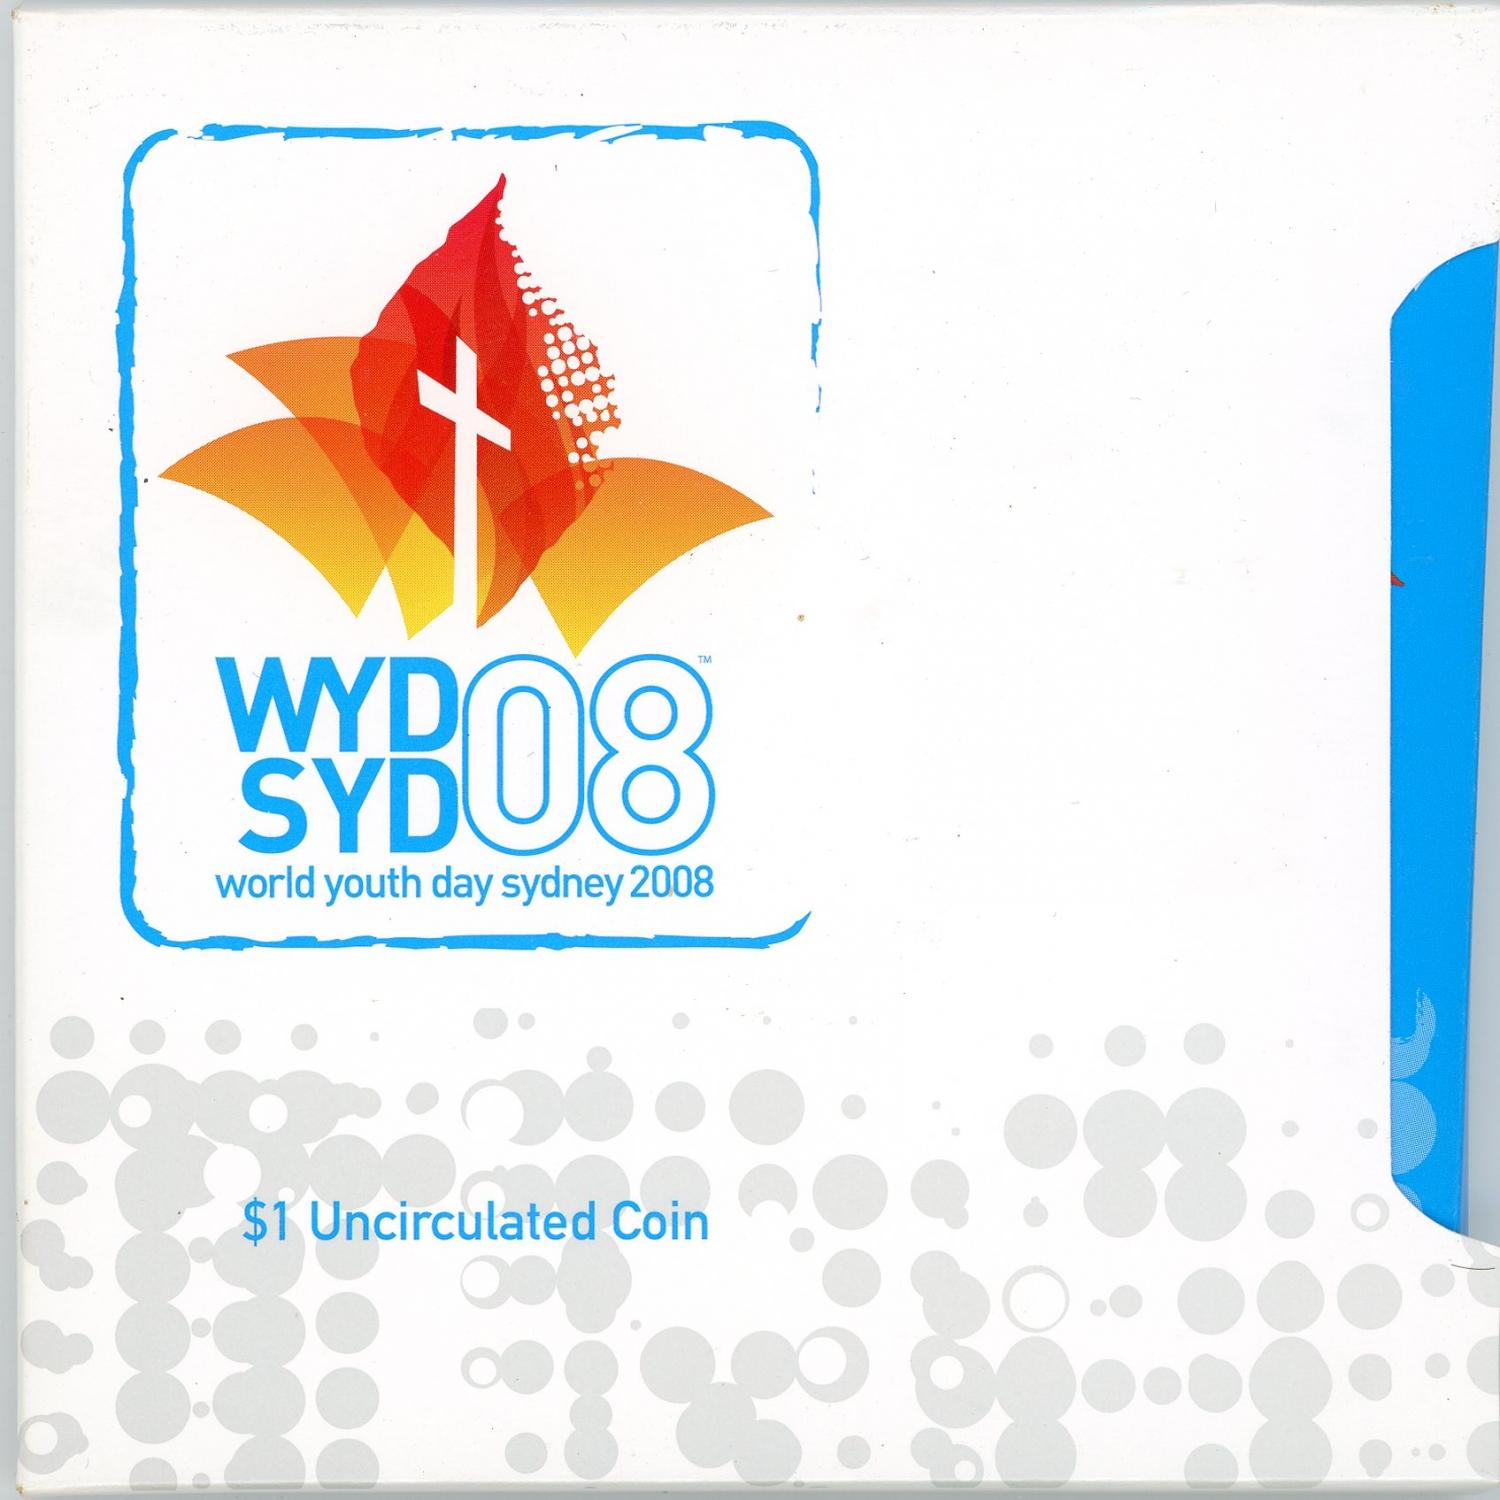 Thumbnail for 2008 $1 Uncirculated Coin - World Youth Day Sydney